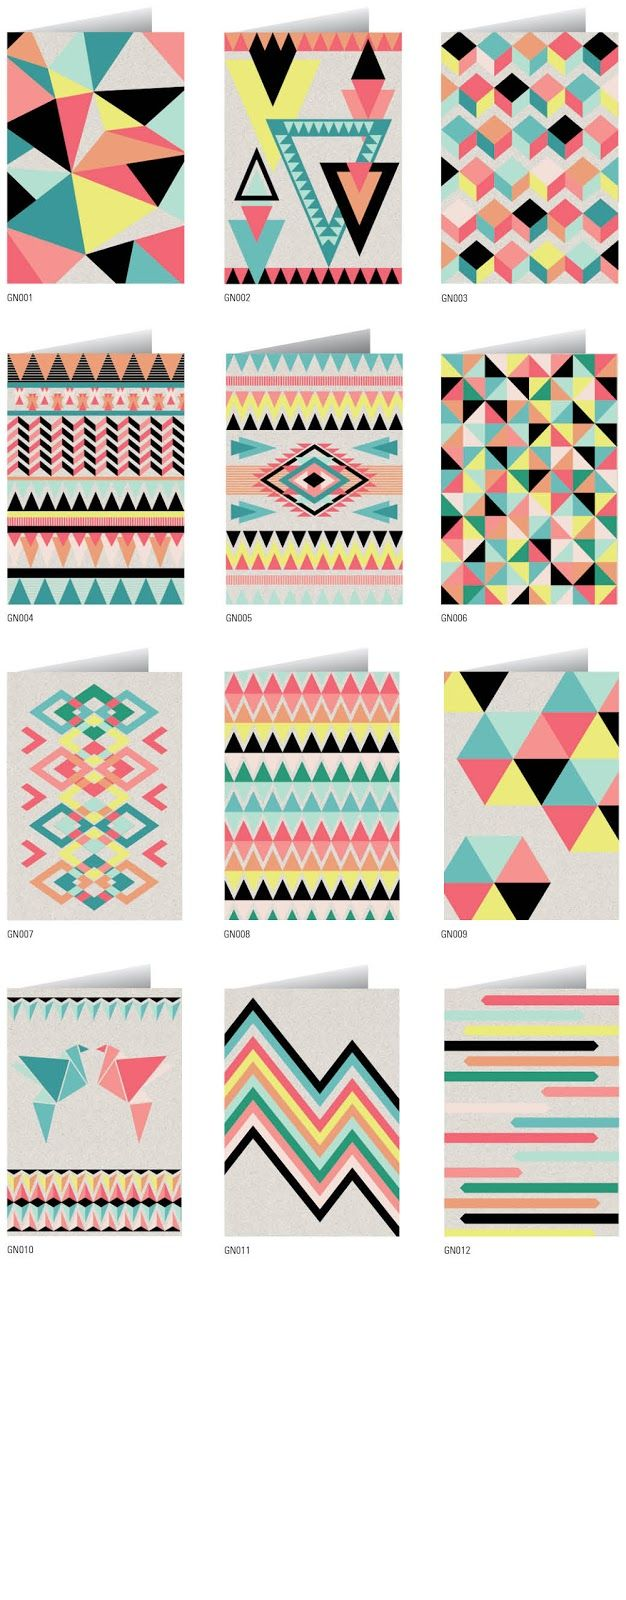 I love these patterns!!!! I think the colours look amazing together and would…